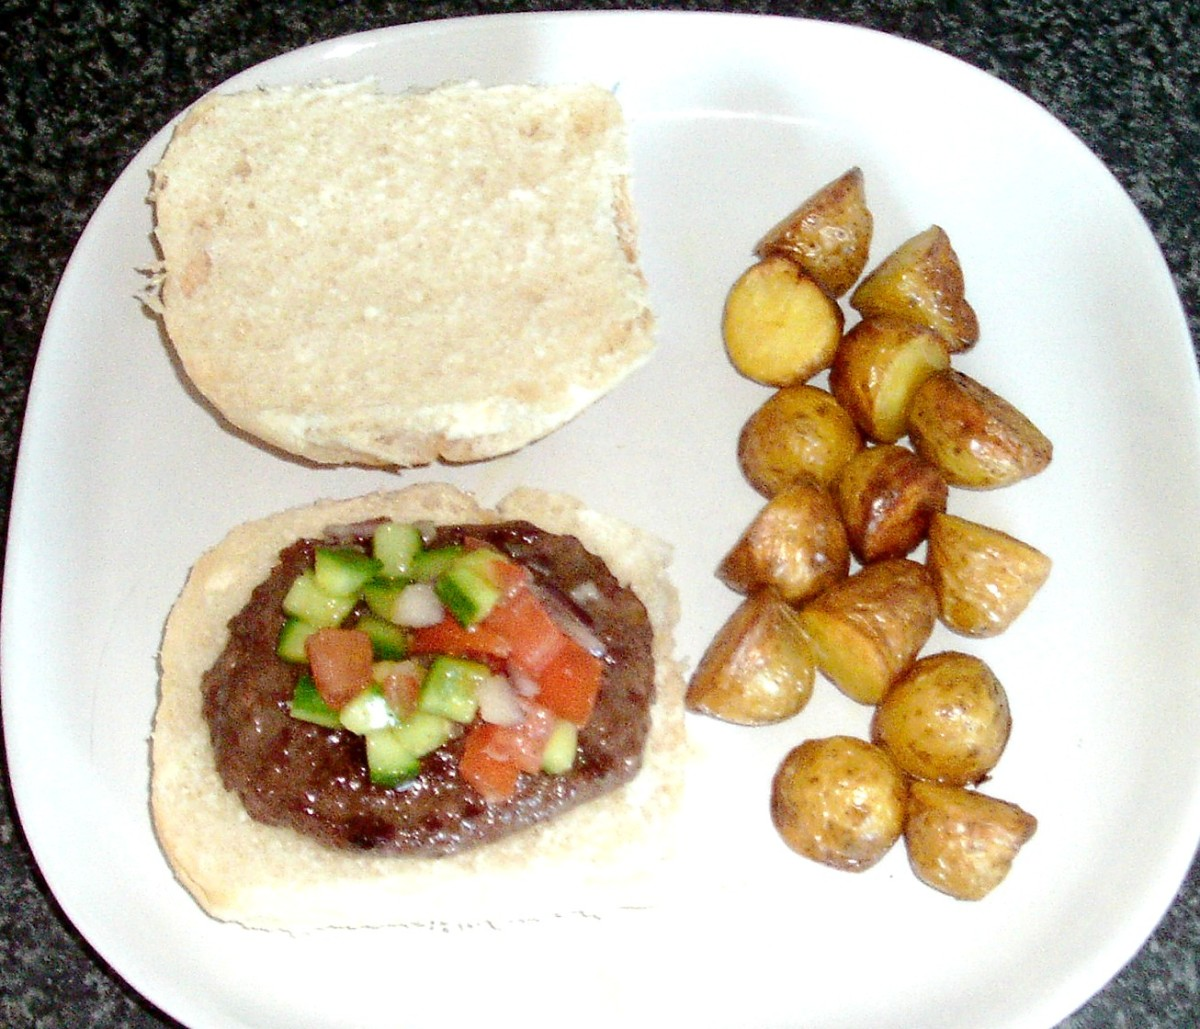 Buffalo and beef burger on a bread roll with spicy salsa and mini roast potatoes.